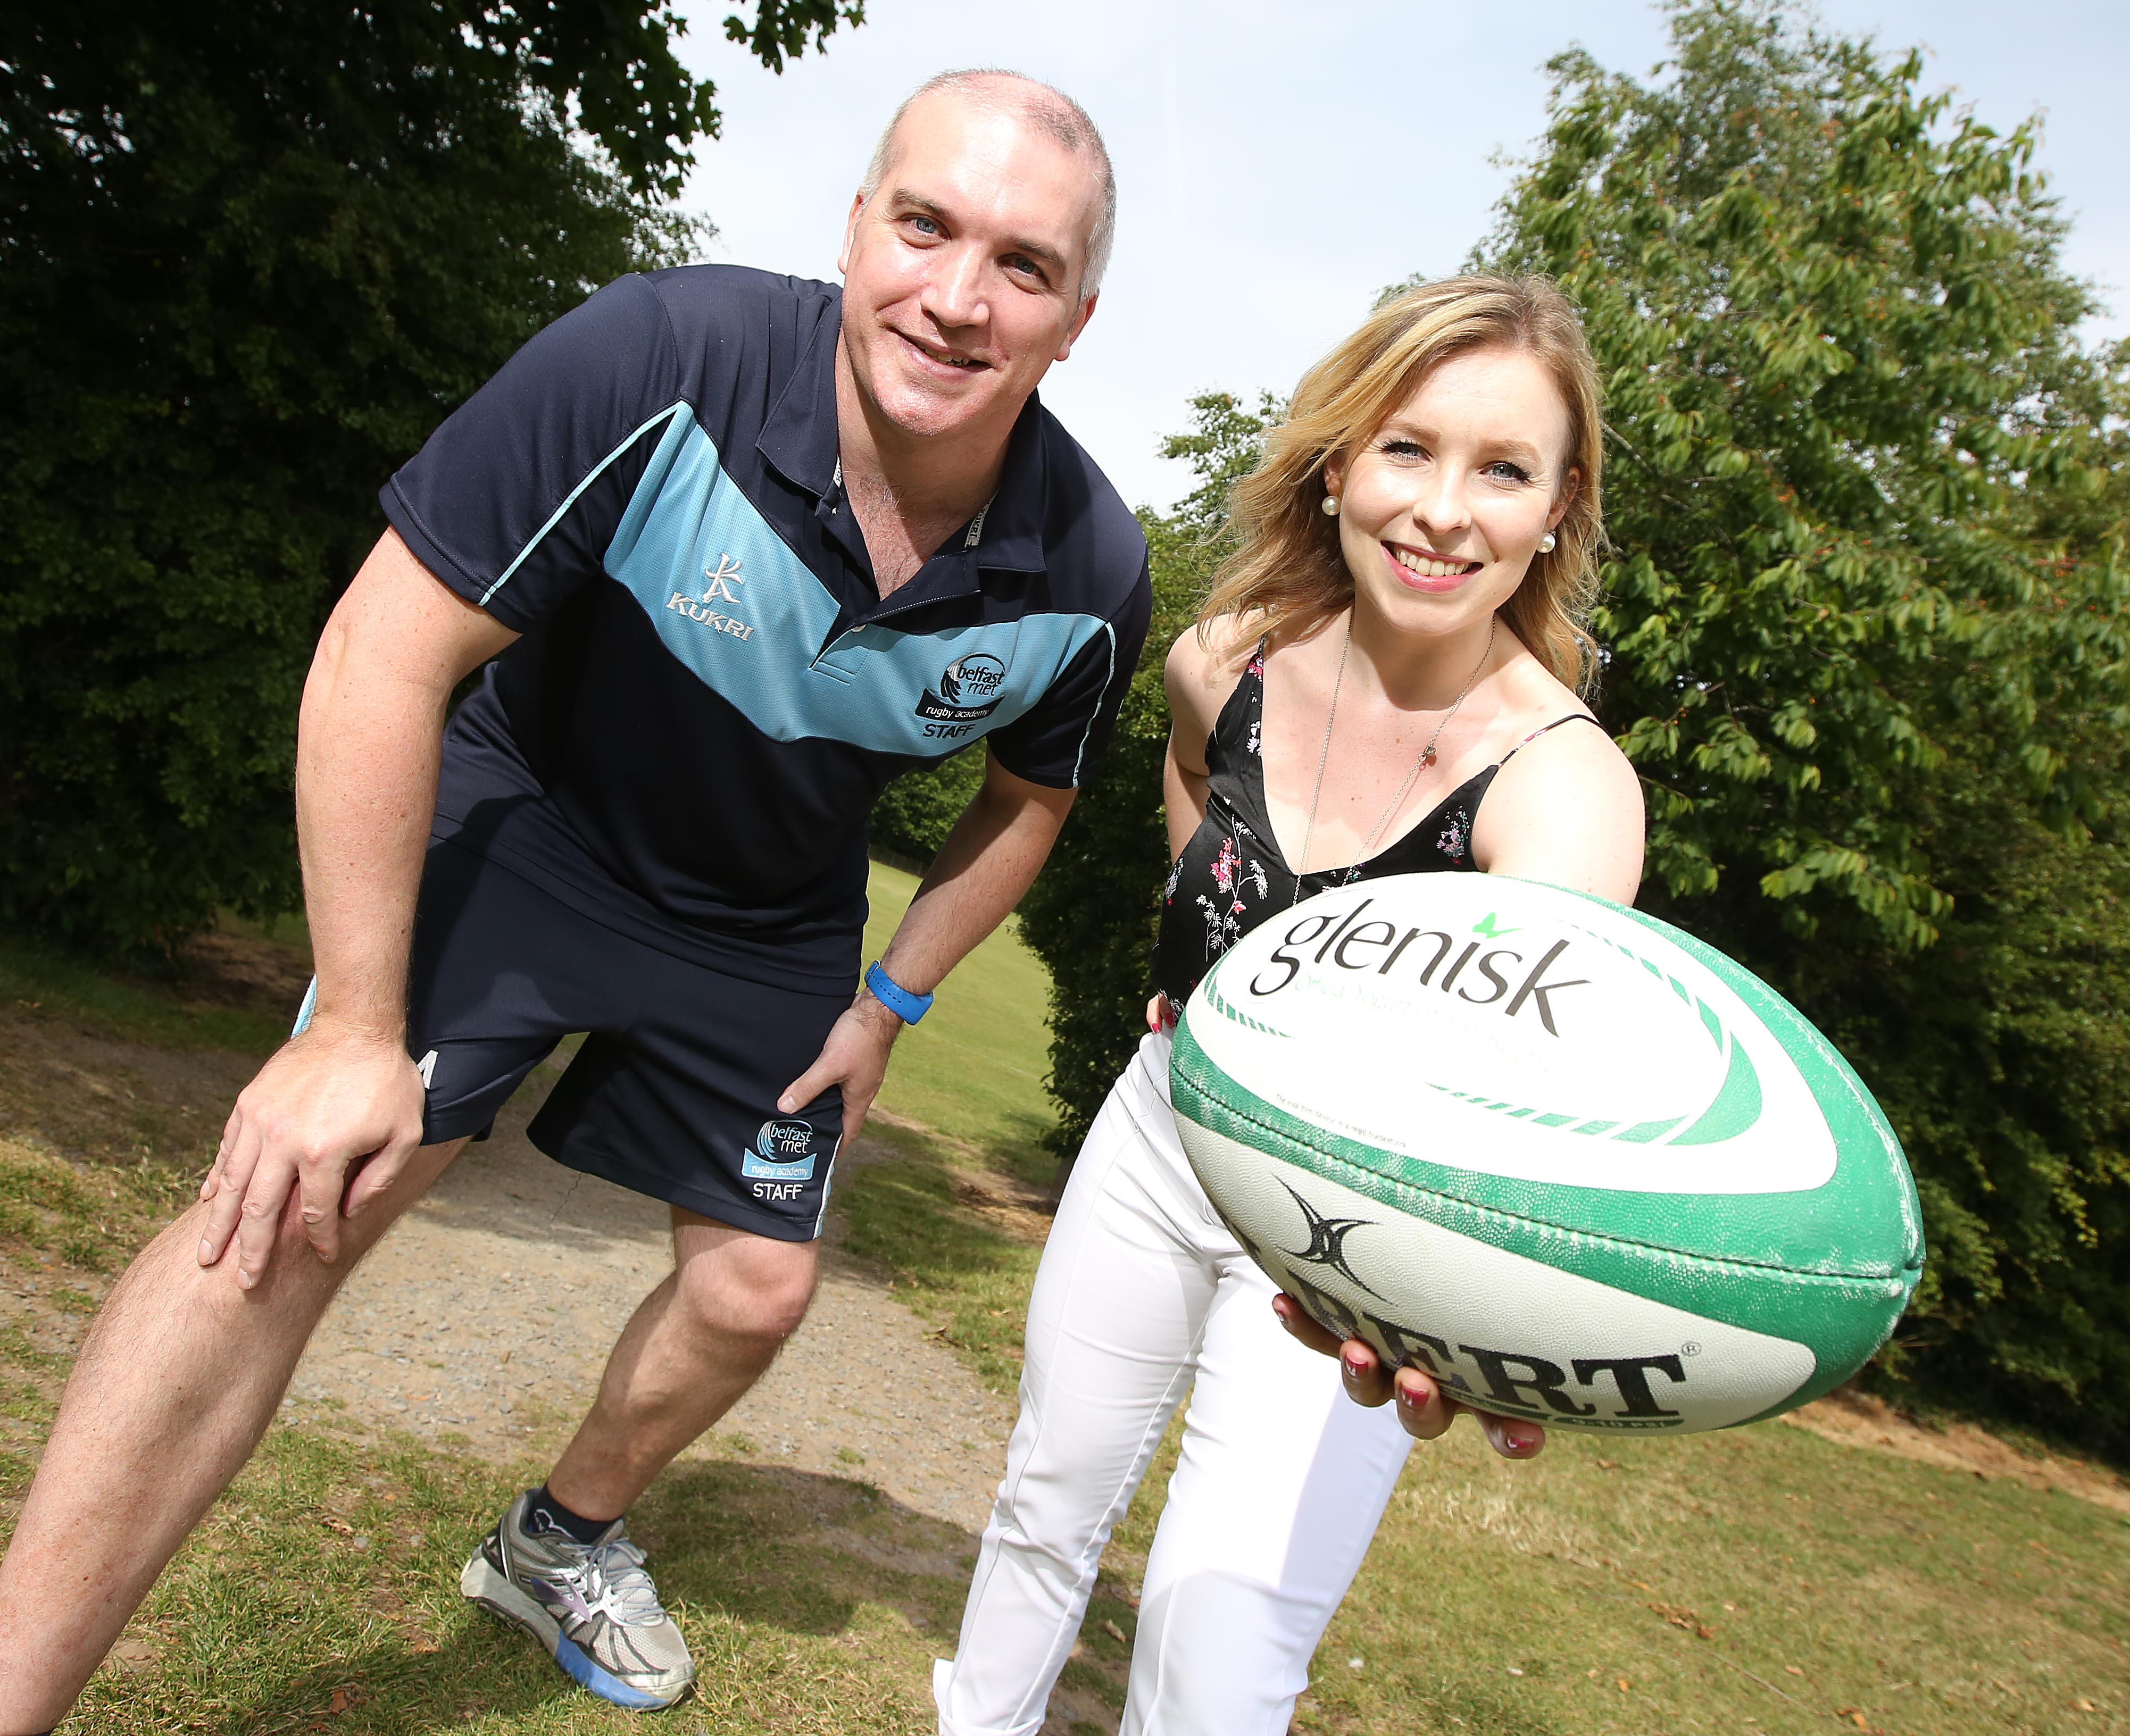 Belfast Met Rugby Academy links up with Glenisk for Kids' Rugby Training Camps with Rory Best